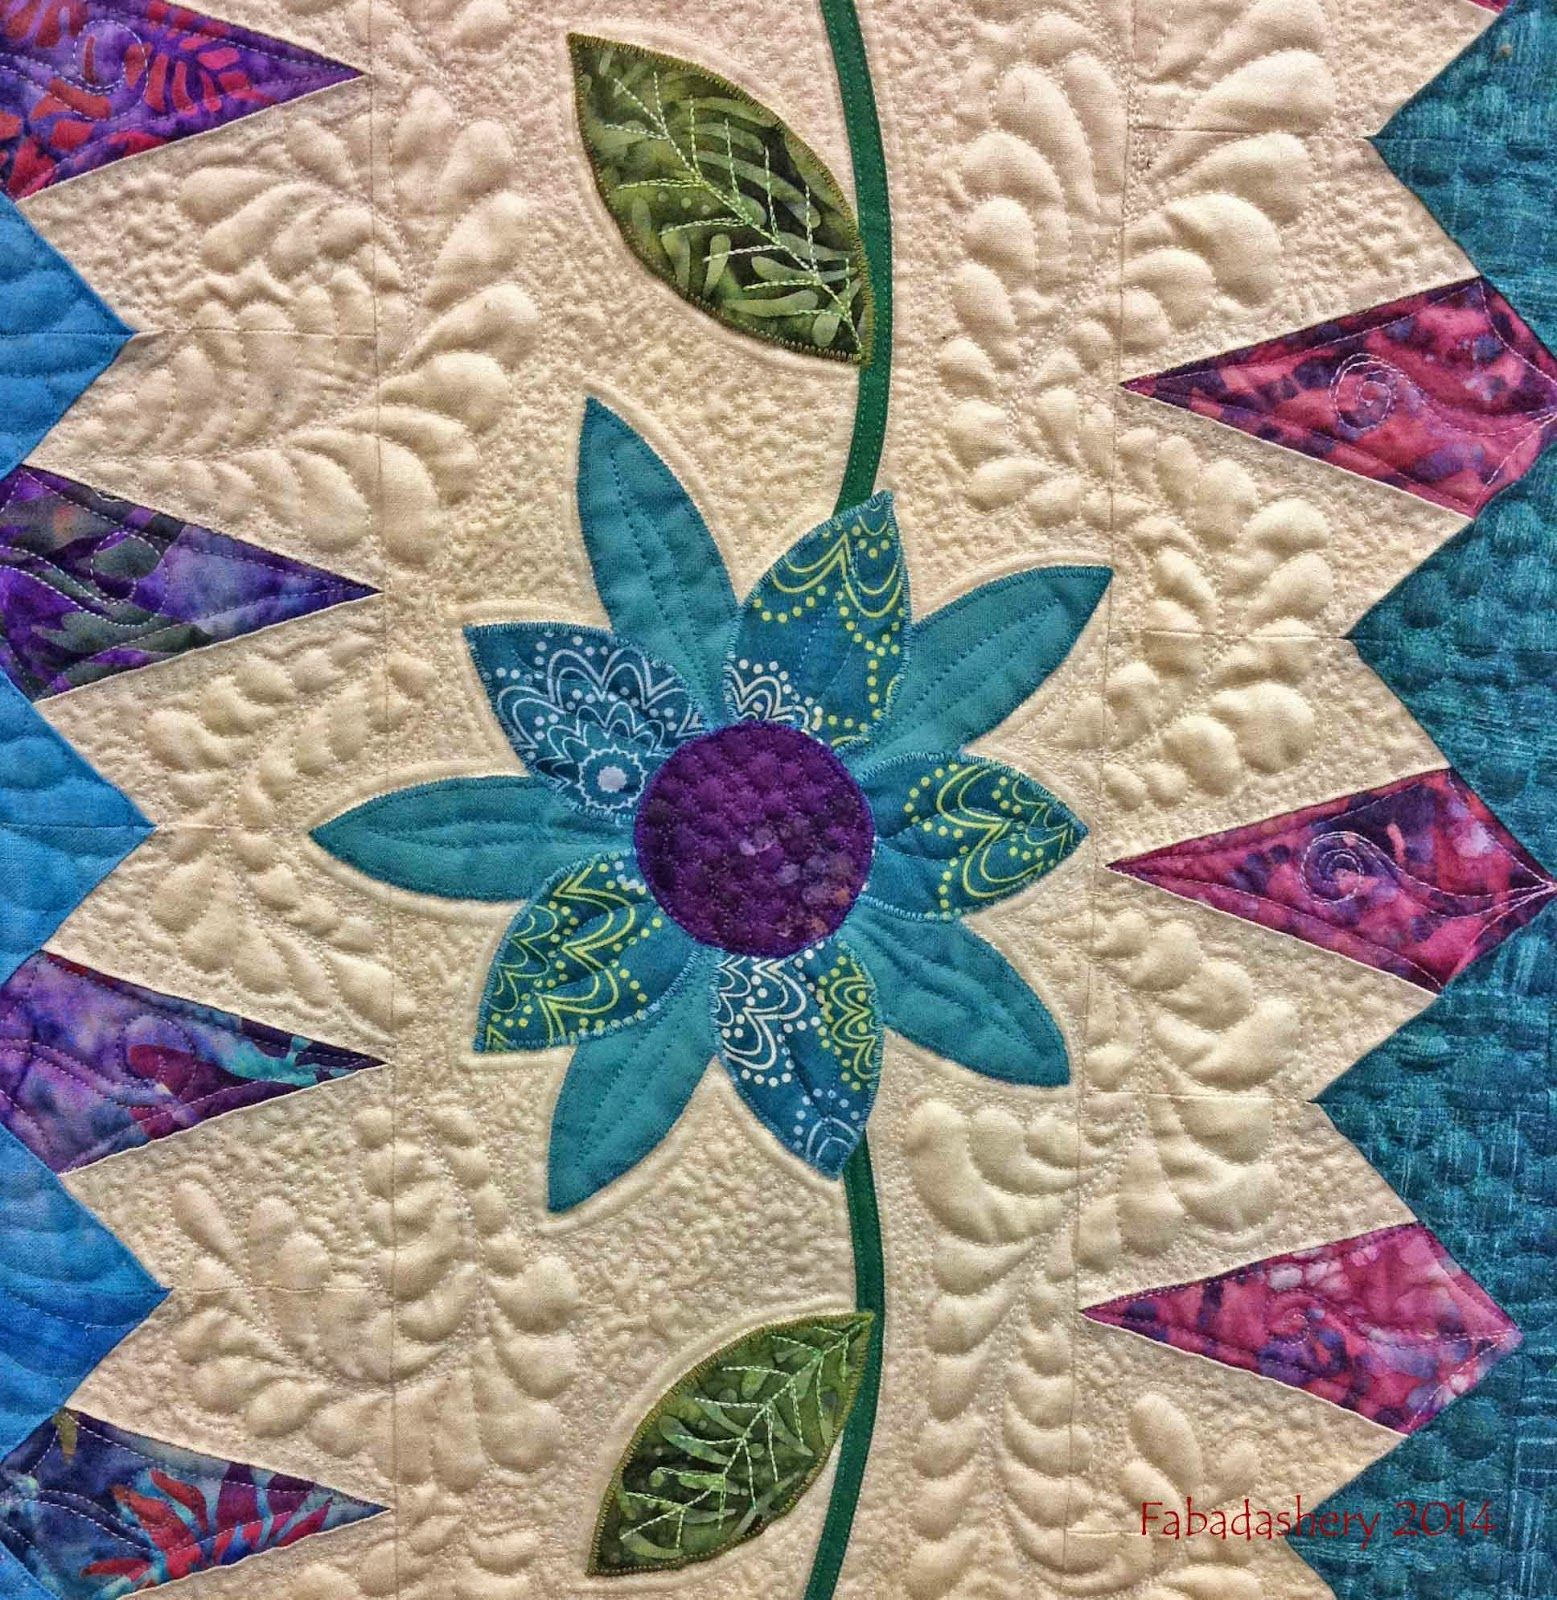 a a detail enchanted garden quilt by rhianon taylor